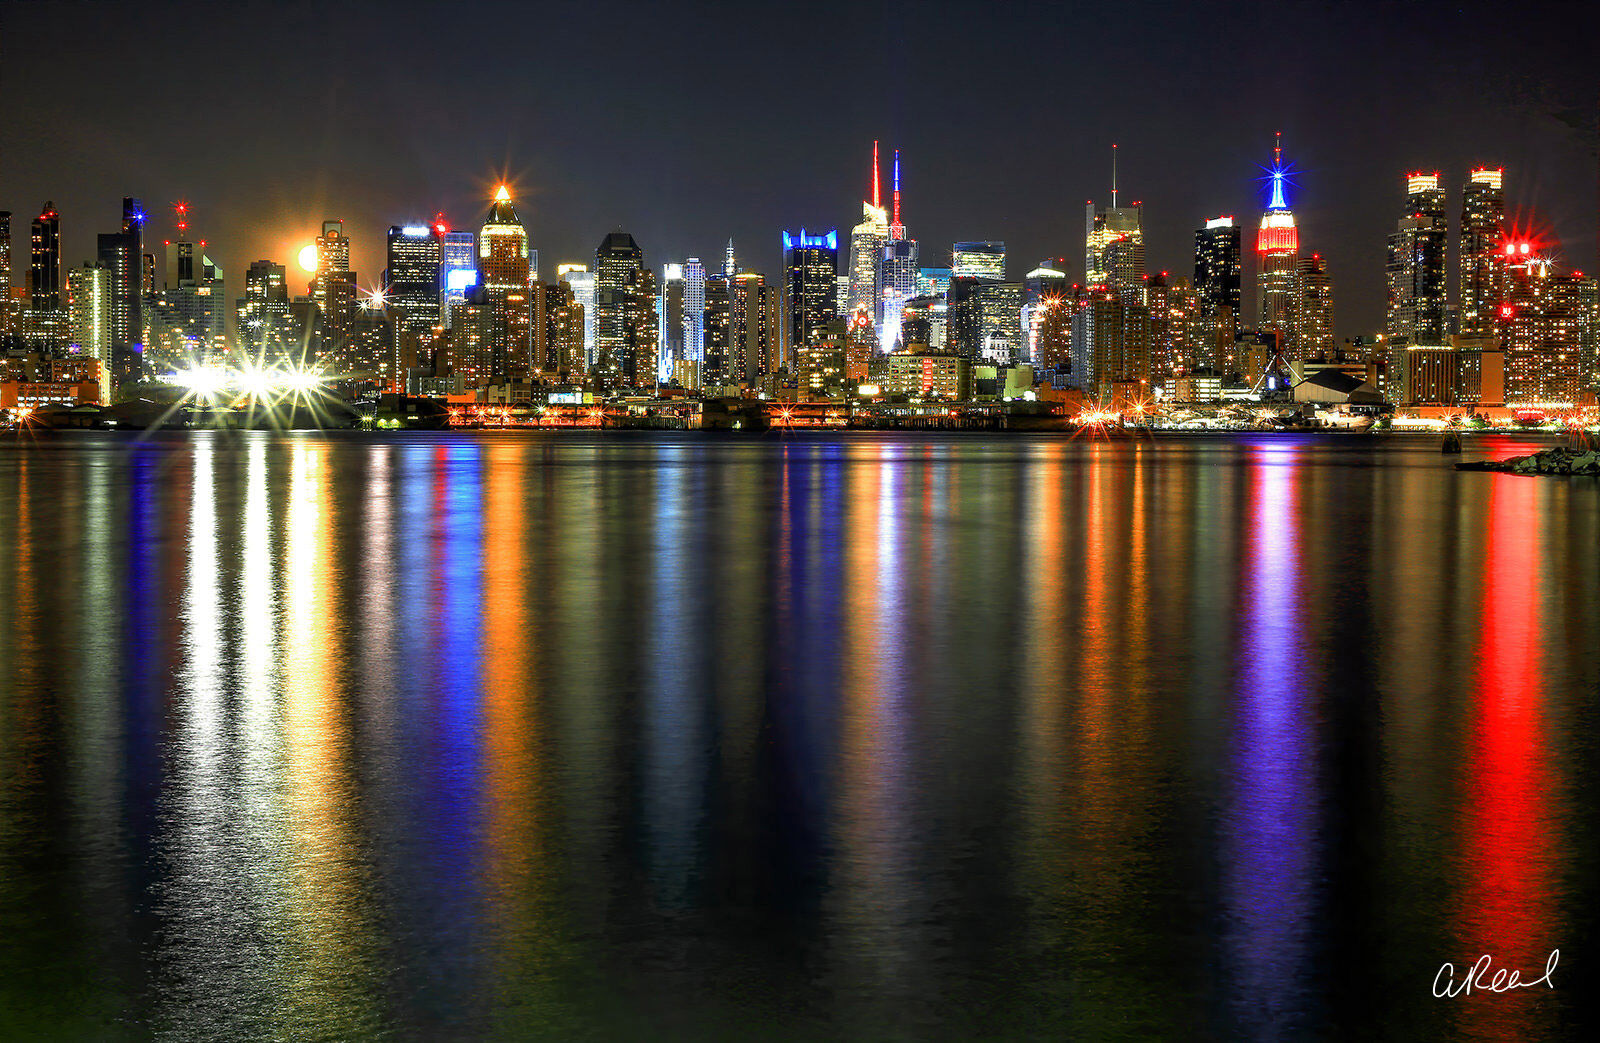 Moonrise over New York Reflected In The Water At Night, photo